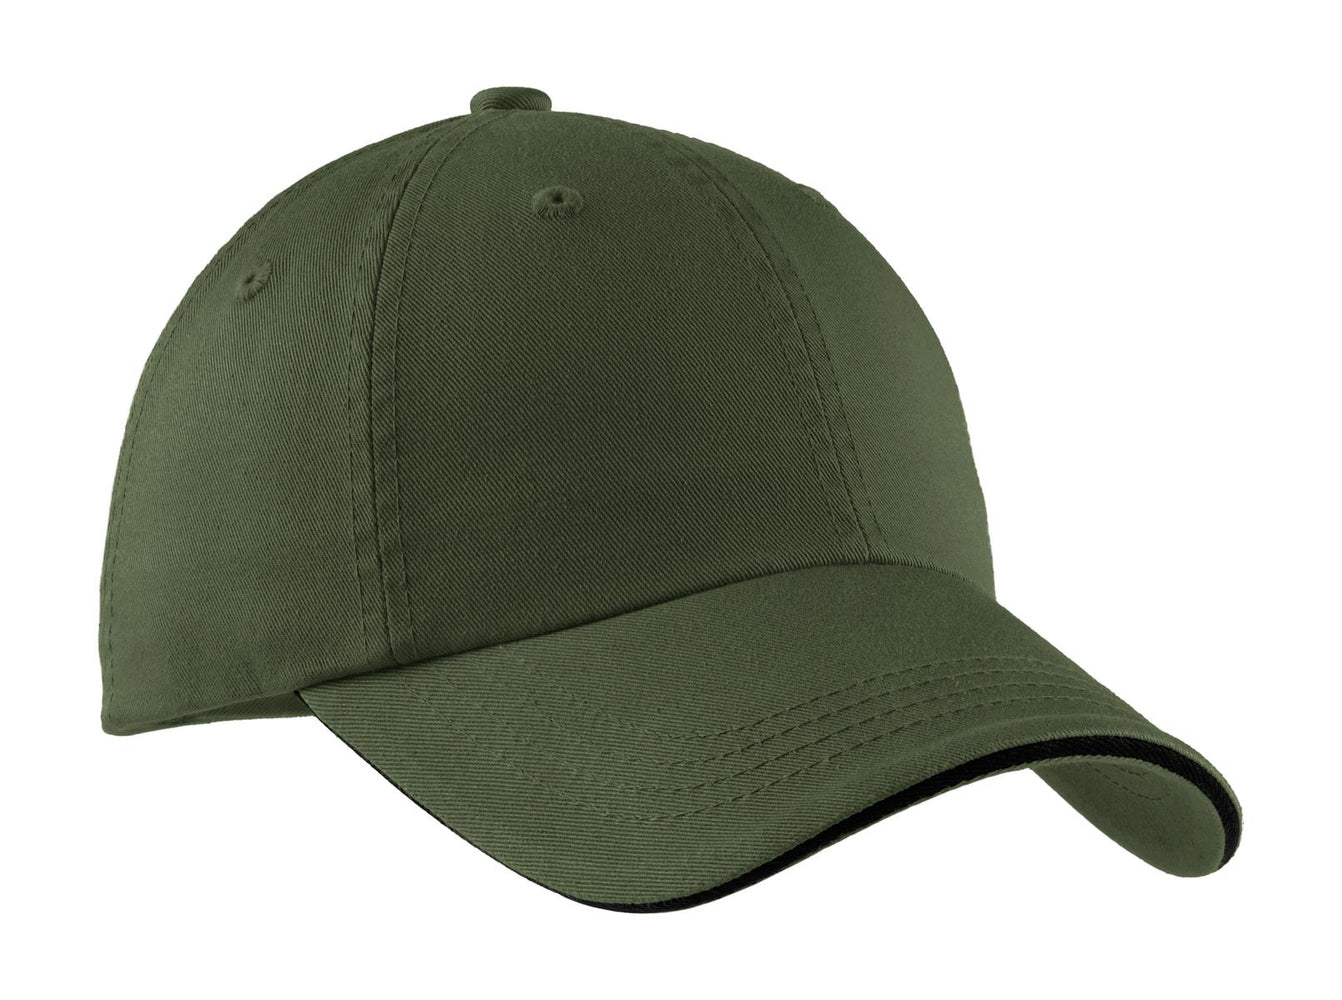 Port Authority® Sandwich Bill Cap with Striped Closure.  C830 (Olive/Black)